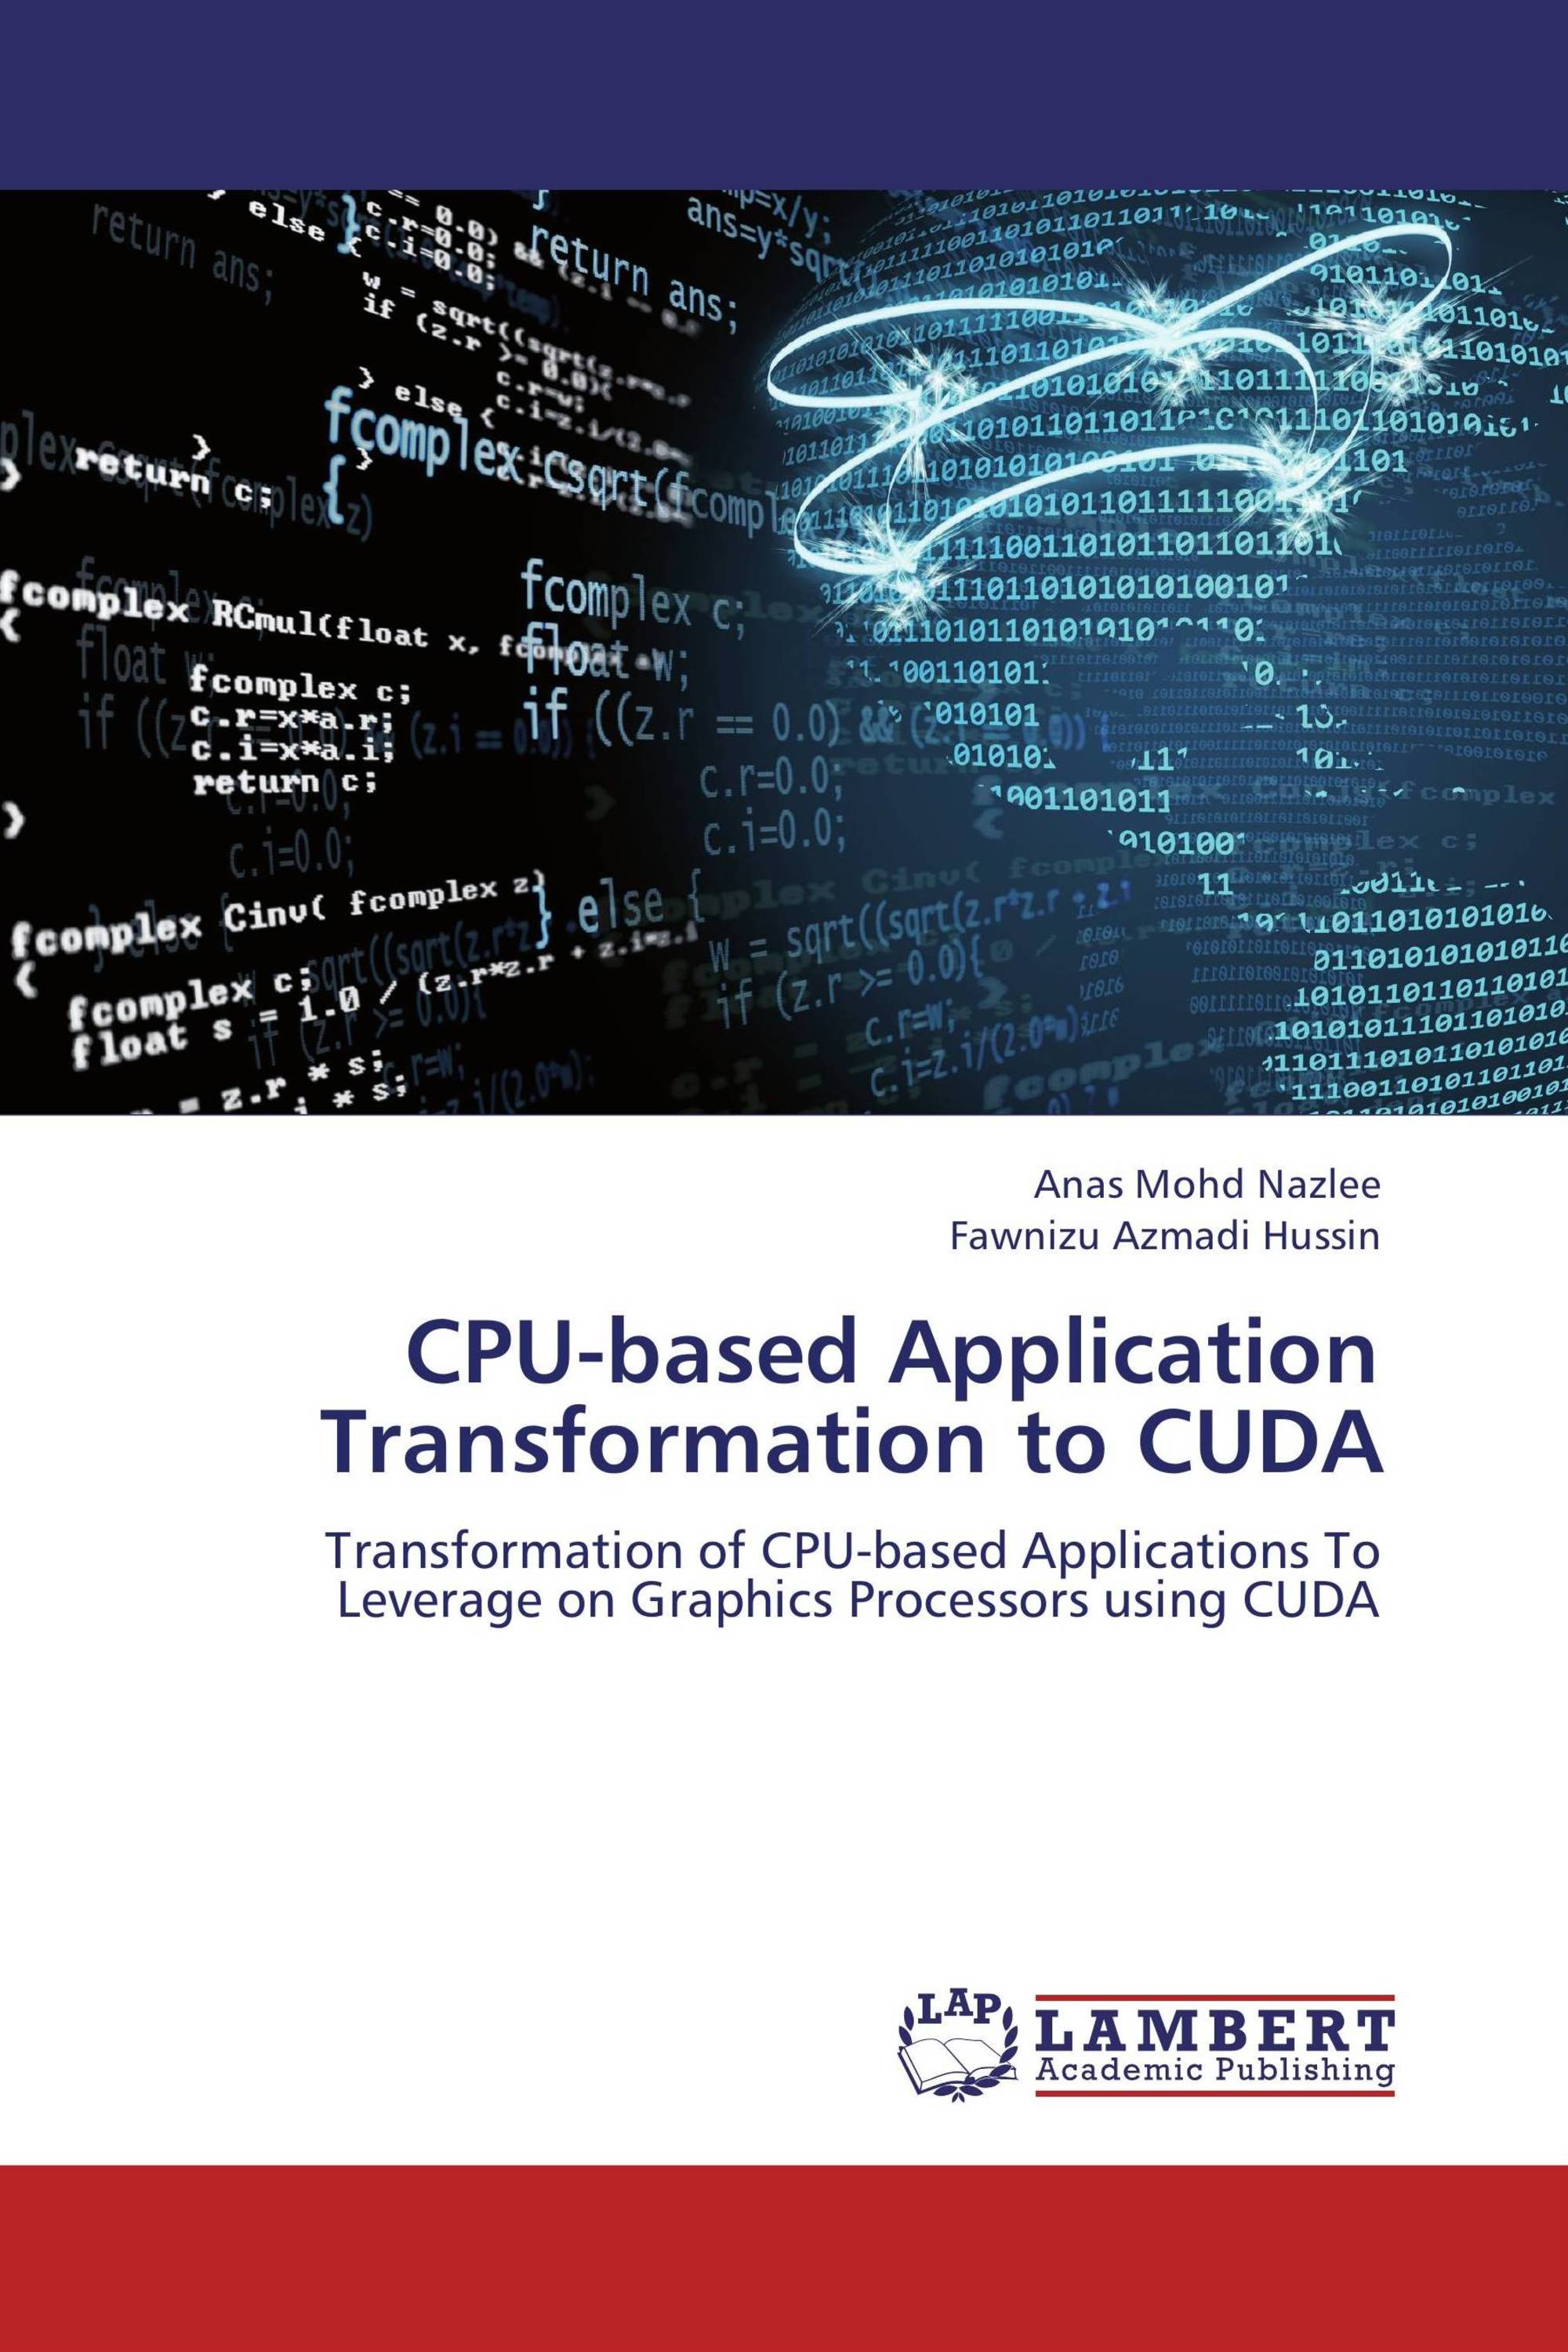 CPU-based Application Transformation to CUDA